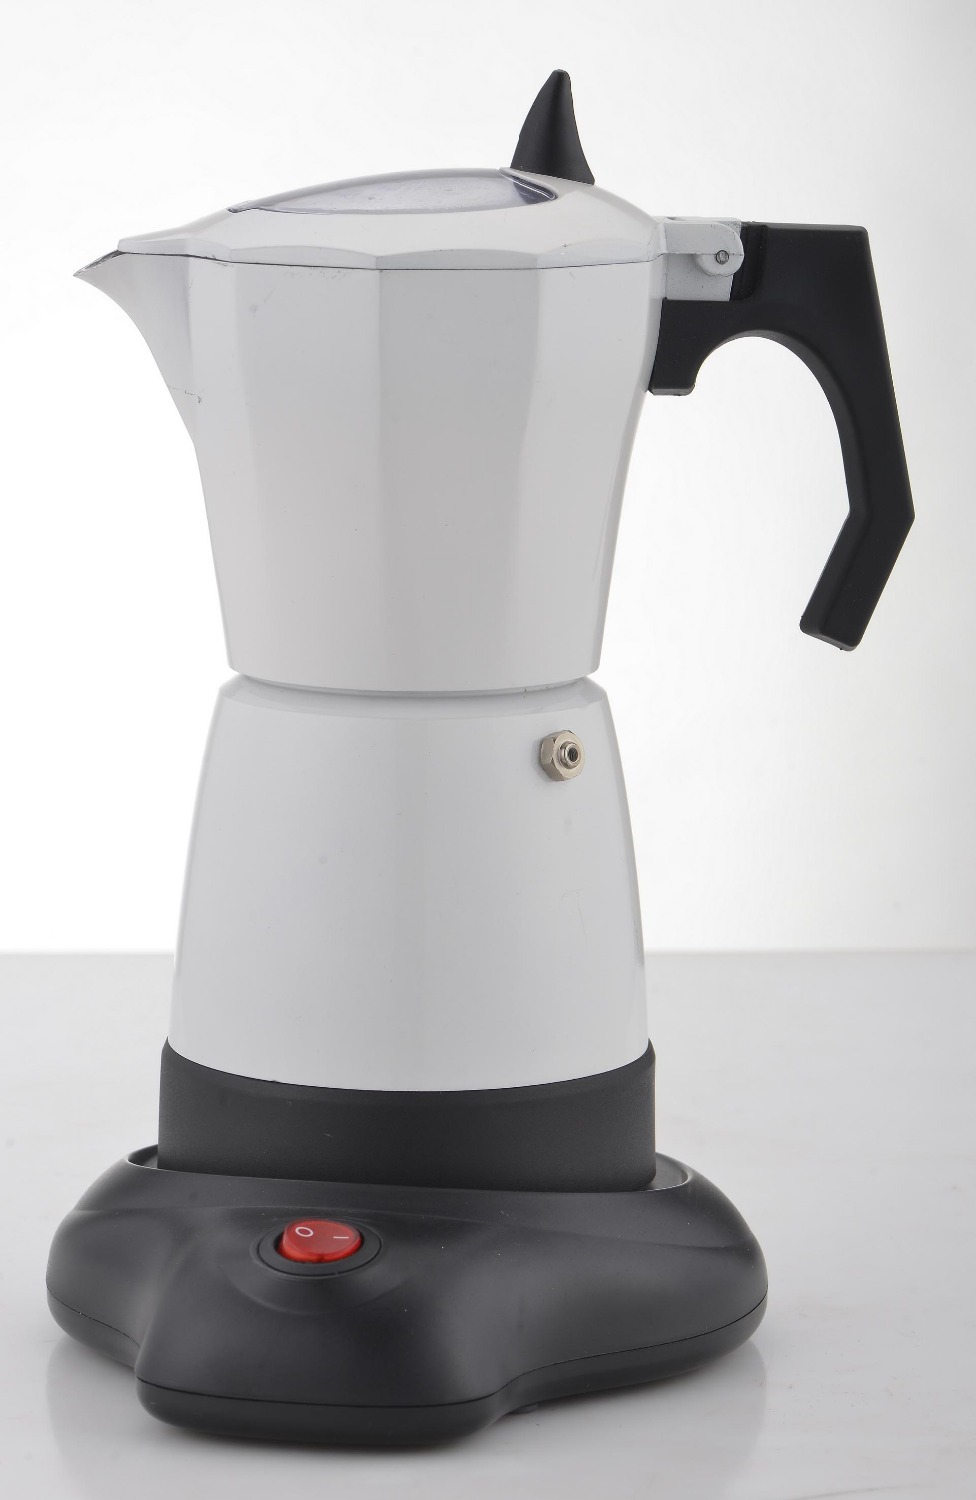 Electric Percolator Coffee Maker Reviews : Electric espresso mocha coffee maker/mocha coffee pot with high quality,and perfect gift for ...